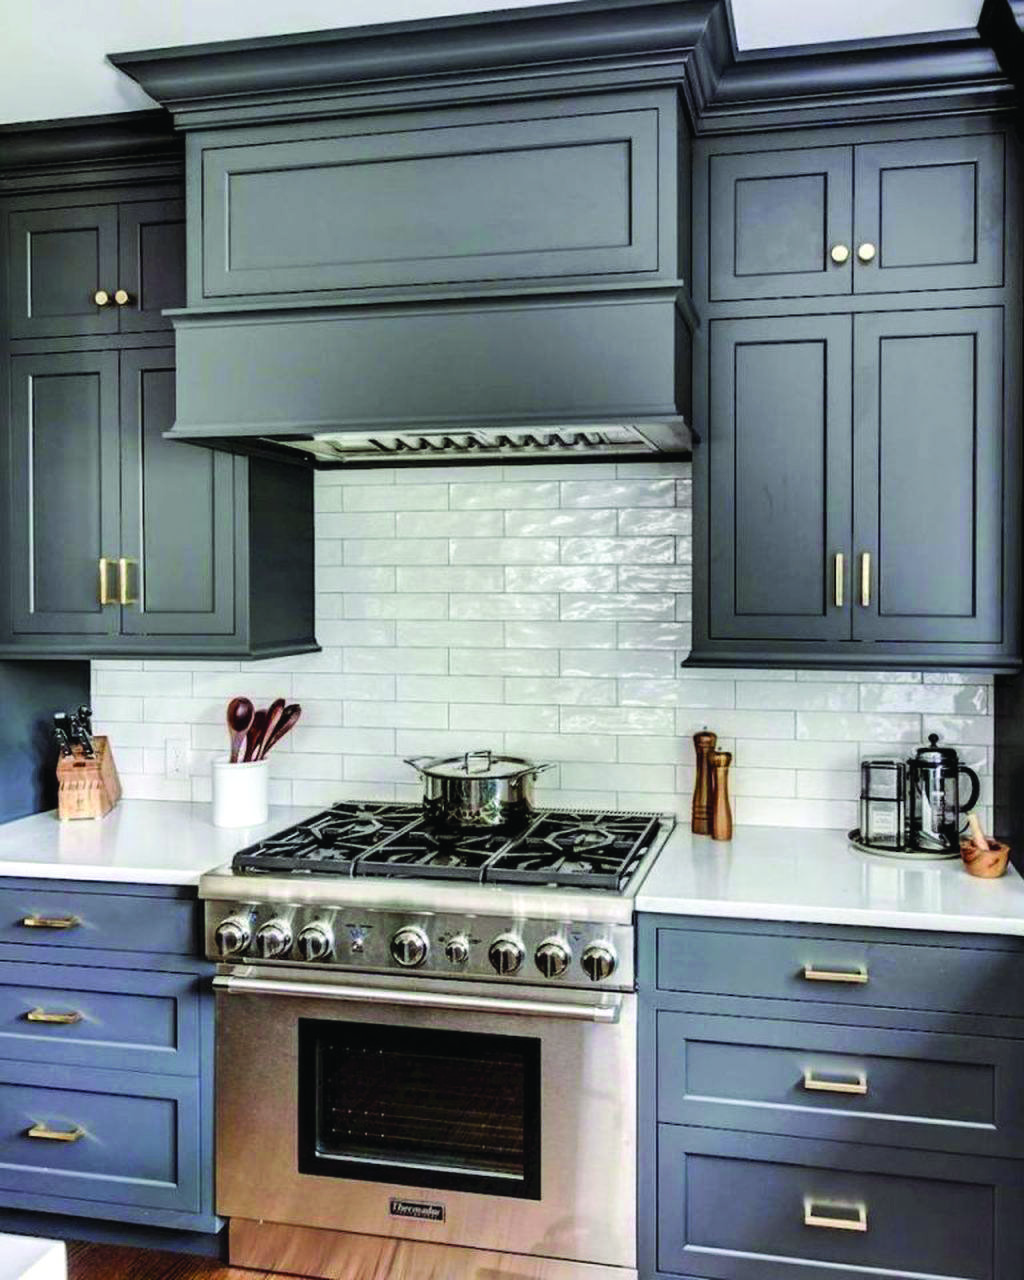 Kitchen Cabinets Uk Only Ba Components Kitchens Kitchen Cabinet Doors Only New Kitchen Cabinet Doors Affordable Kitchen Cabinets White Is Available Across All Cabinets Whilst Light Grey Oak Is Available